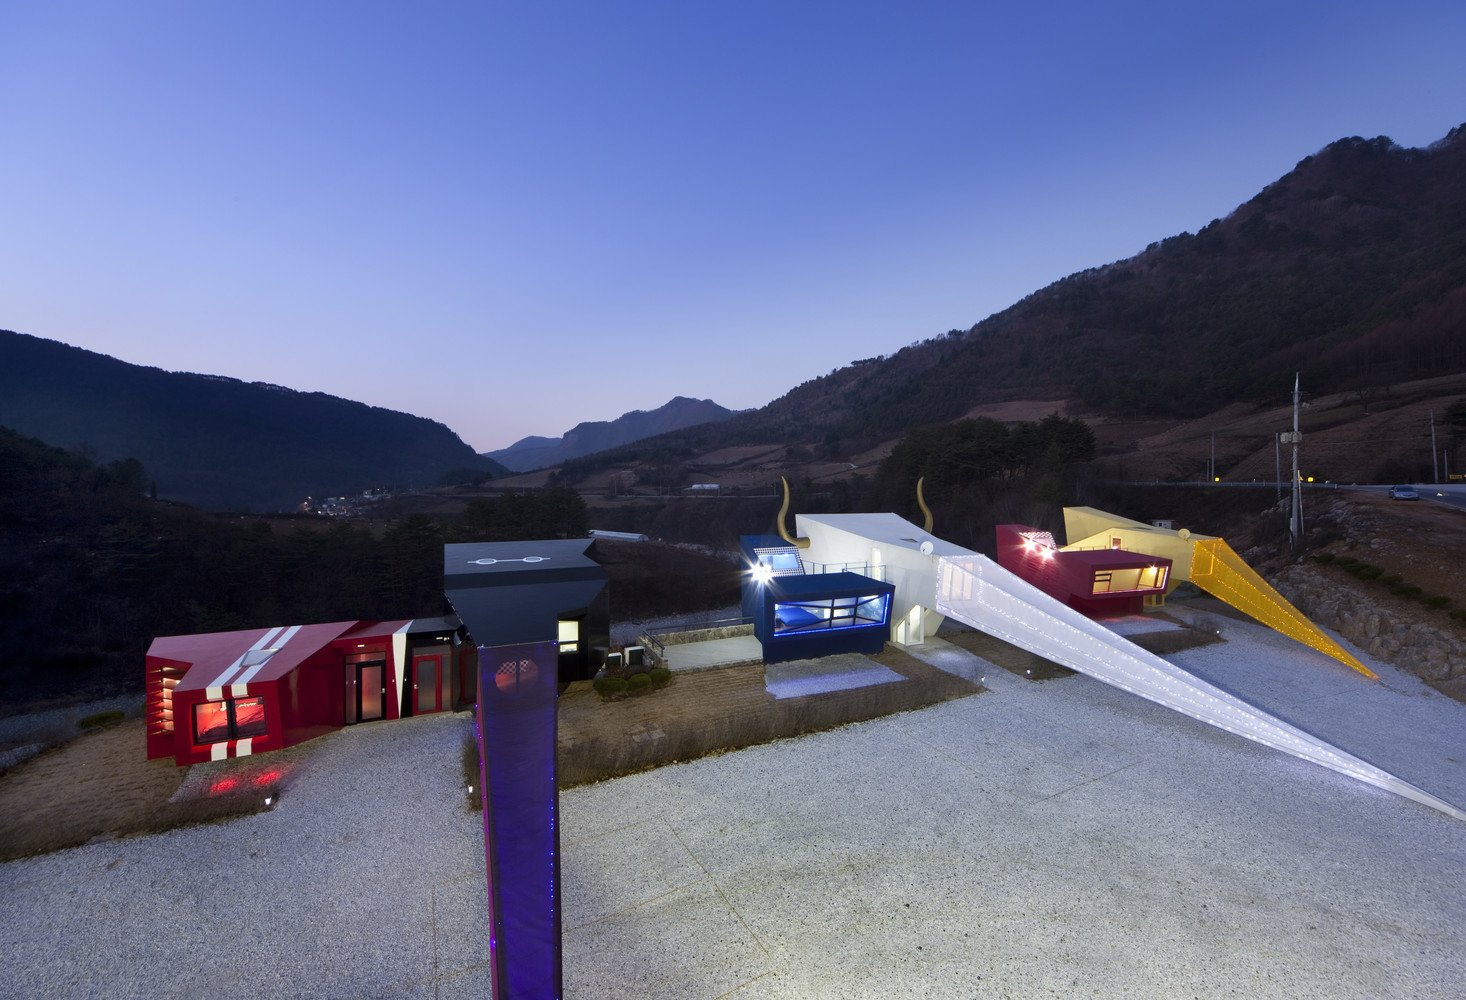 A Wacky Rock 'n' Roll Wonderland in the South Korean Countryside - Photo 10 of 11